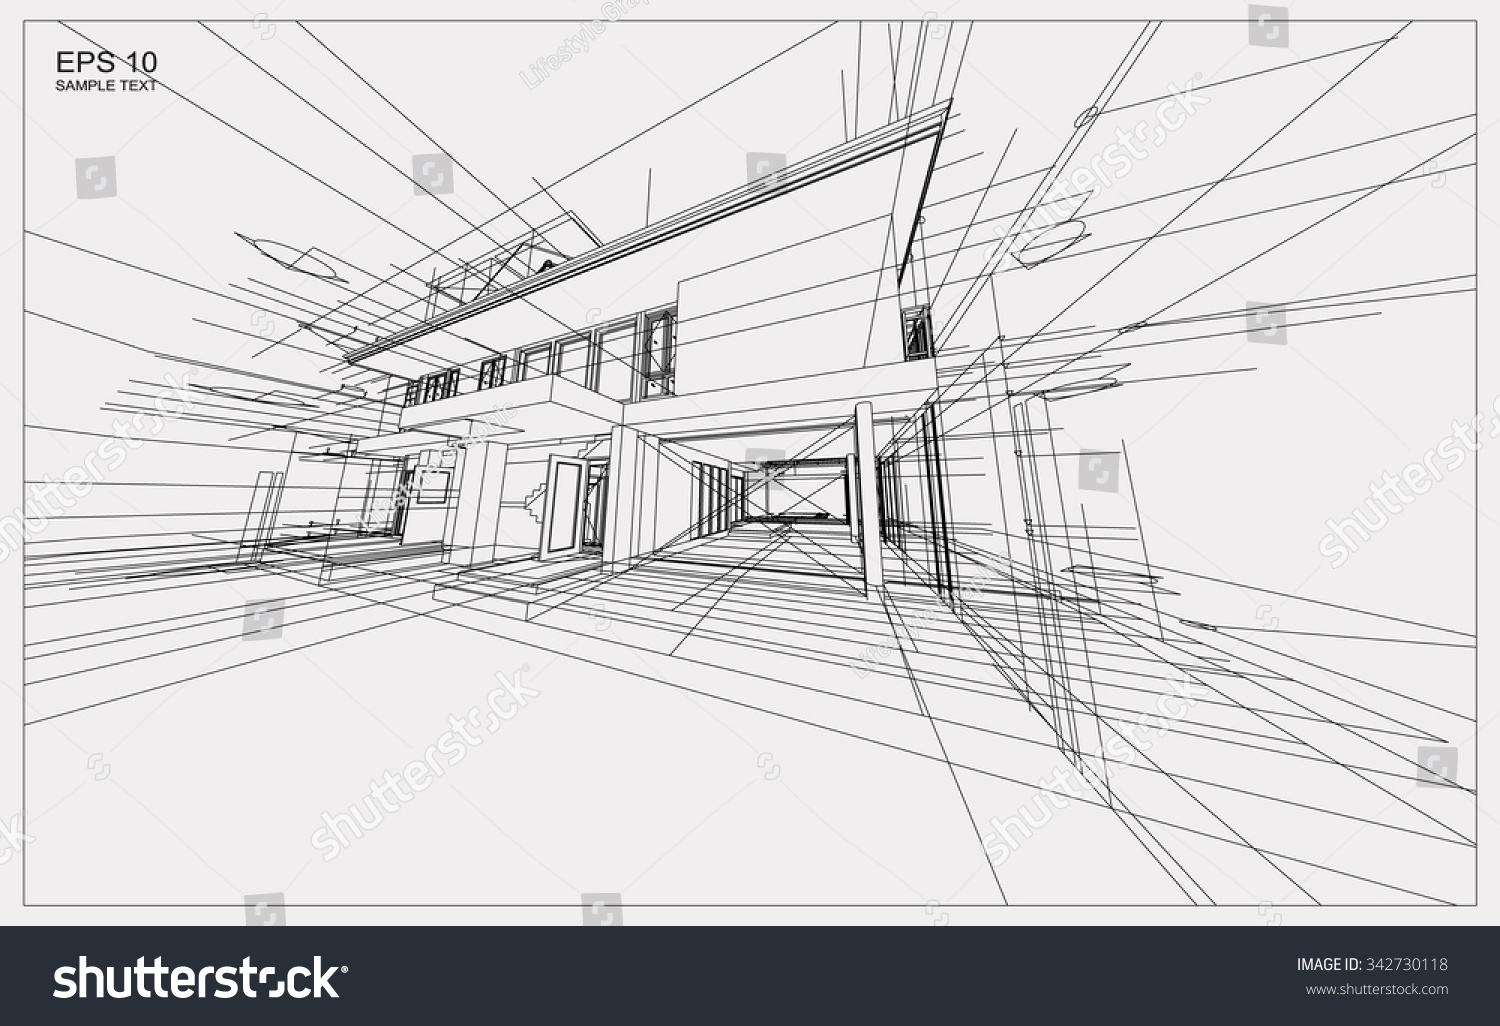 abstract 3d render building wireframe structure stock vector 342730118 shutterstock. Black Bedroom Furniture Sets. Home Design Ideas